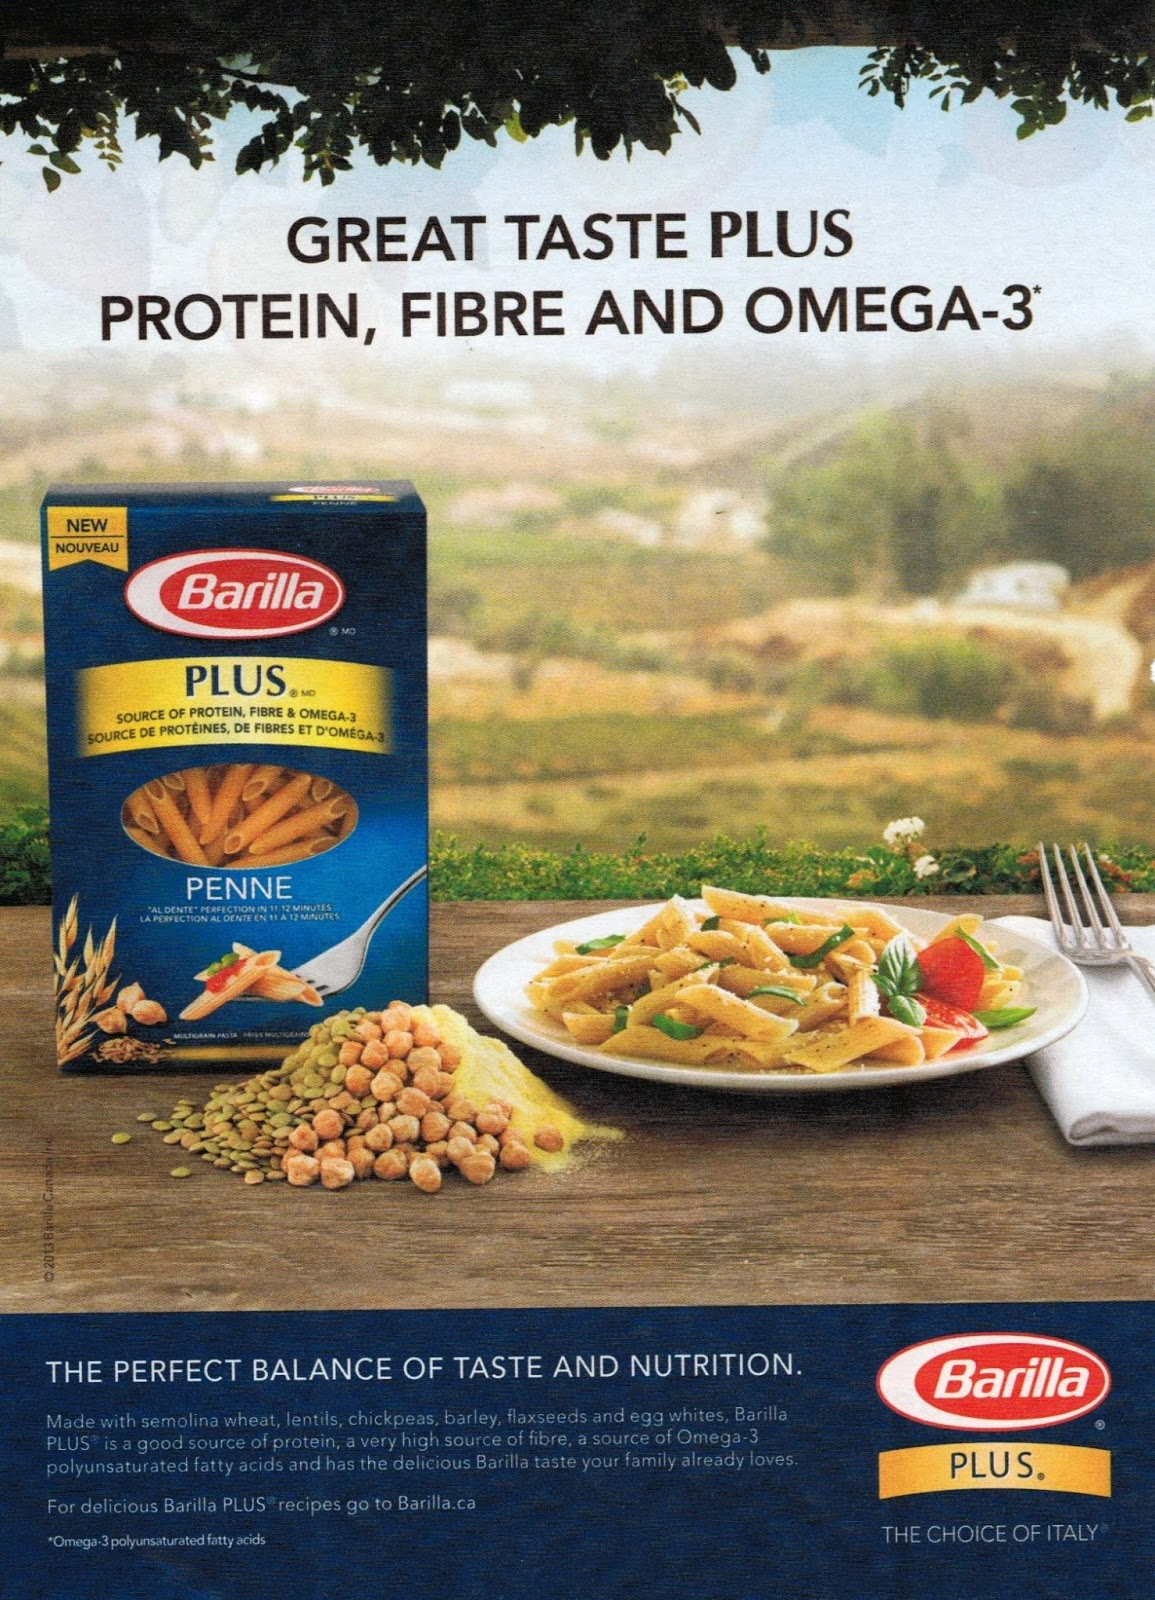 Eating 201lbs Of Barilla Plus Omega 3 Pasta Nets You The Dha Of 2oz Of Salmon